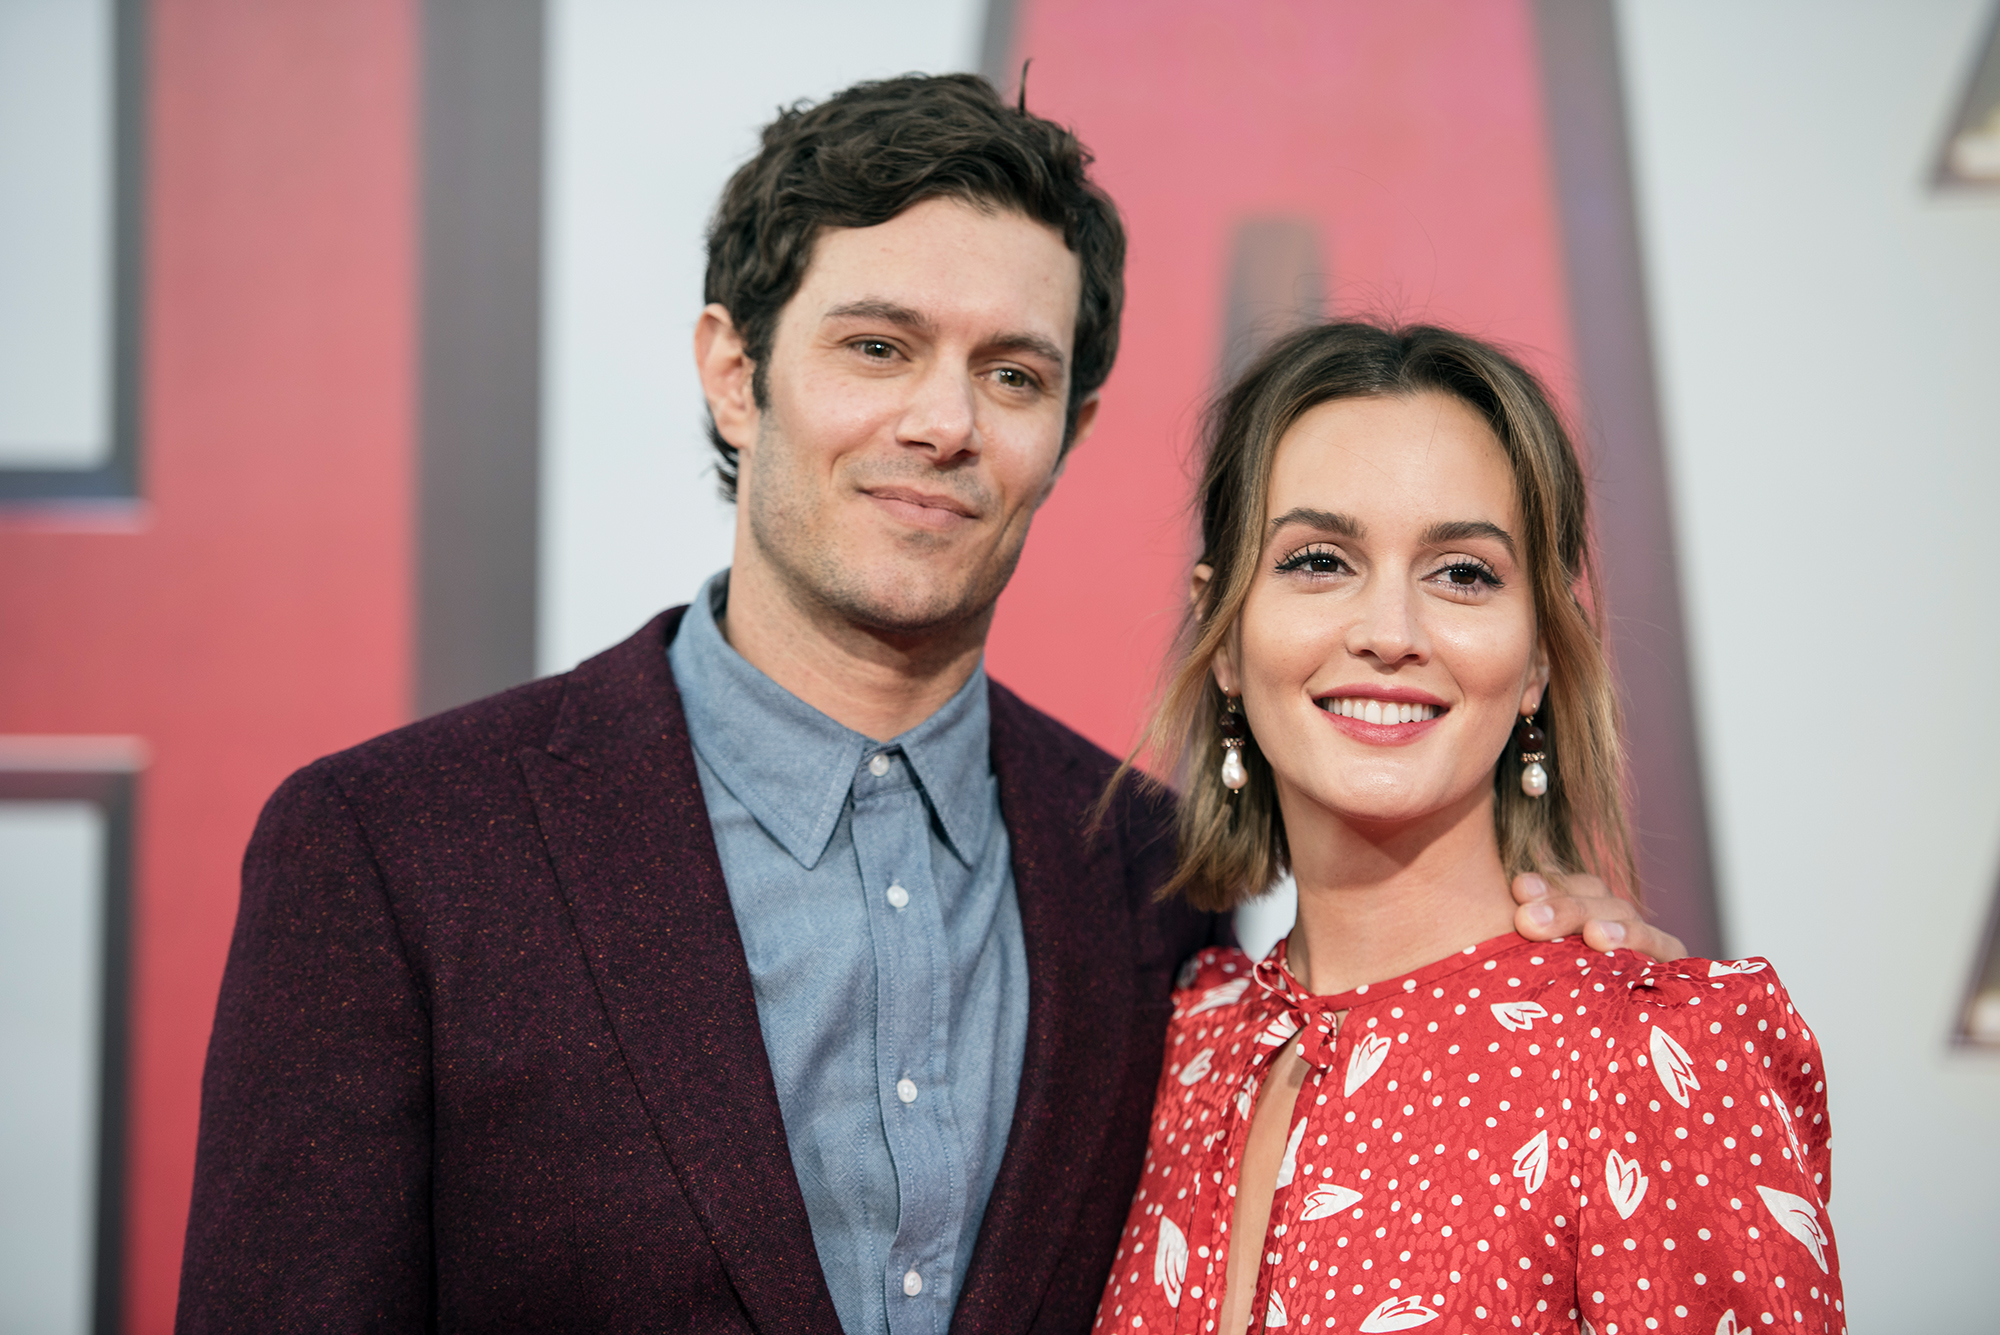 Leighton Meester and Adam Brody Steal the Show on Their First Red Carpet in More Than 2 Years - Leighton Meester and Adam Brody attend Warner Bros. Pictures And New Line Cinema's World Premiere Of 'SHAZAM!' at TCL Chinese Theatre on March 28, 2019 in Hollywood, California.